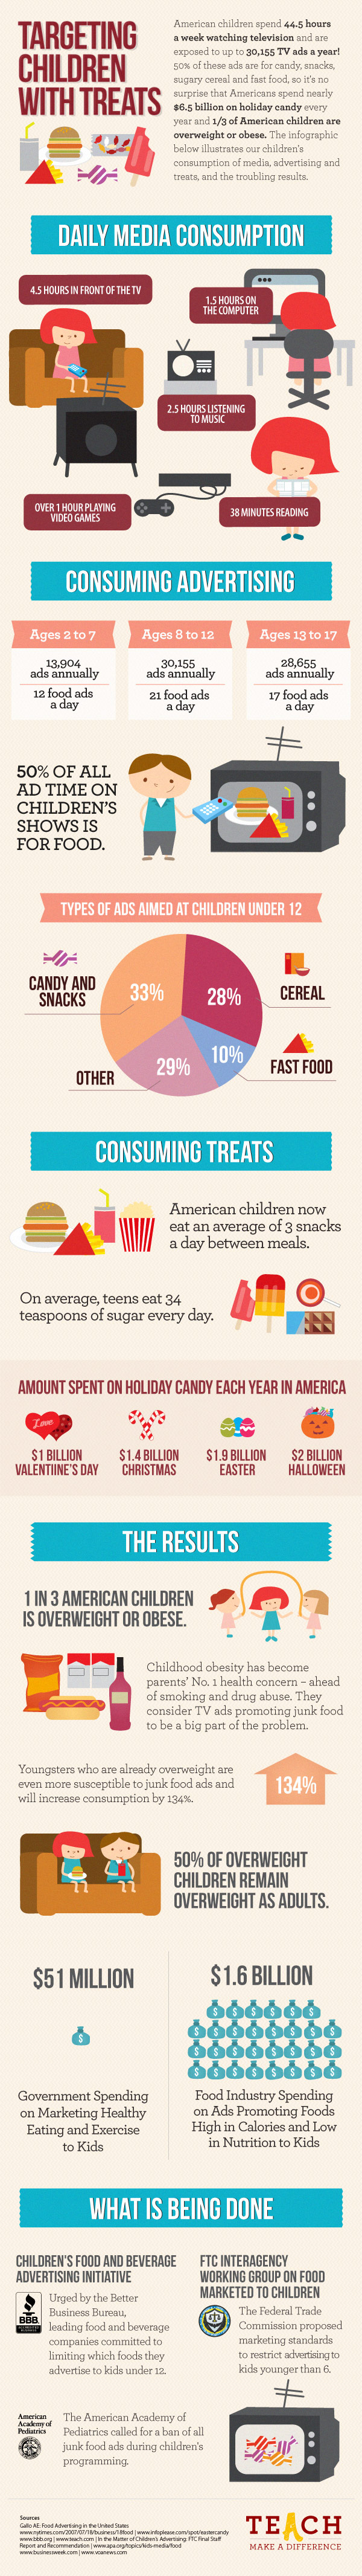 Targeting Children With Treats small version Targeting Children with Treats Infographic: Marketing to Children Sucks